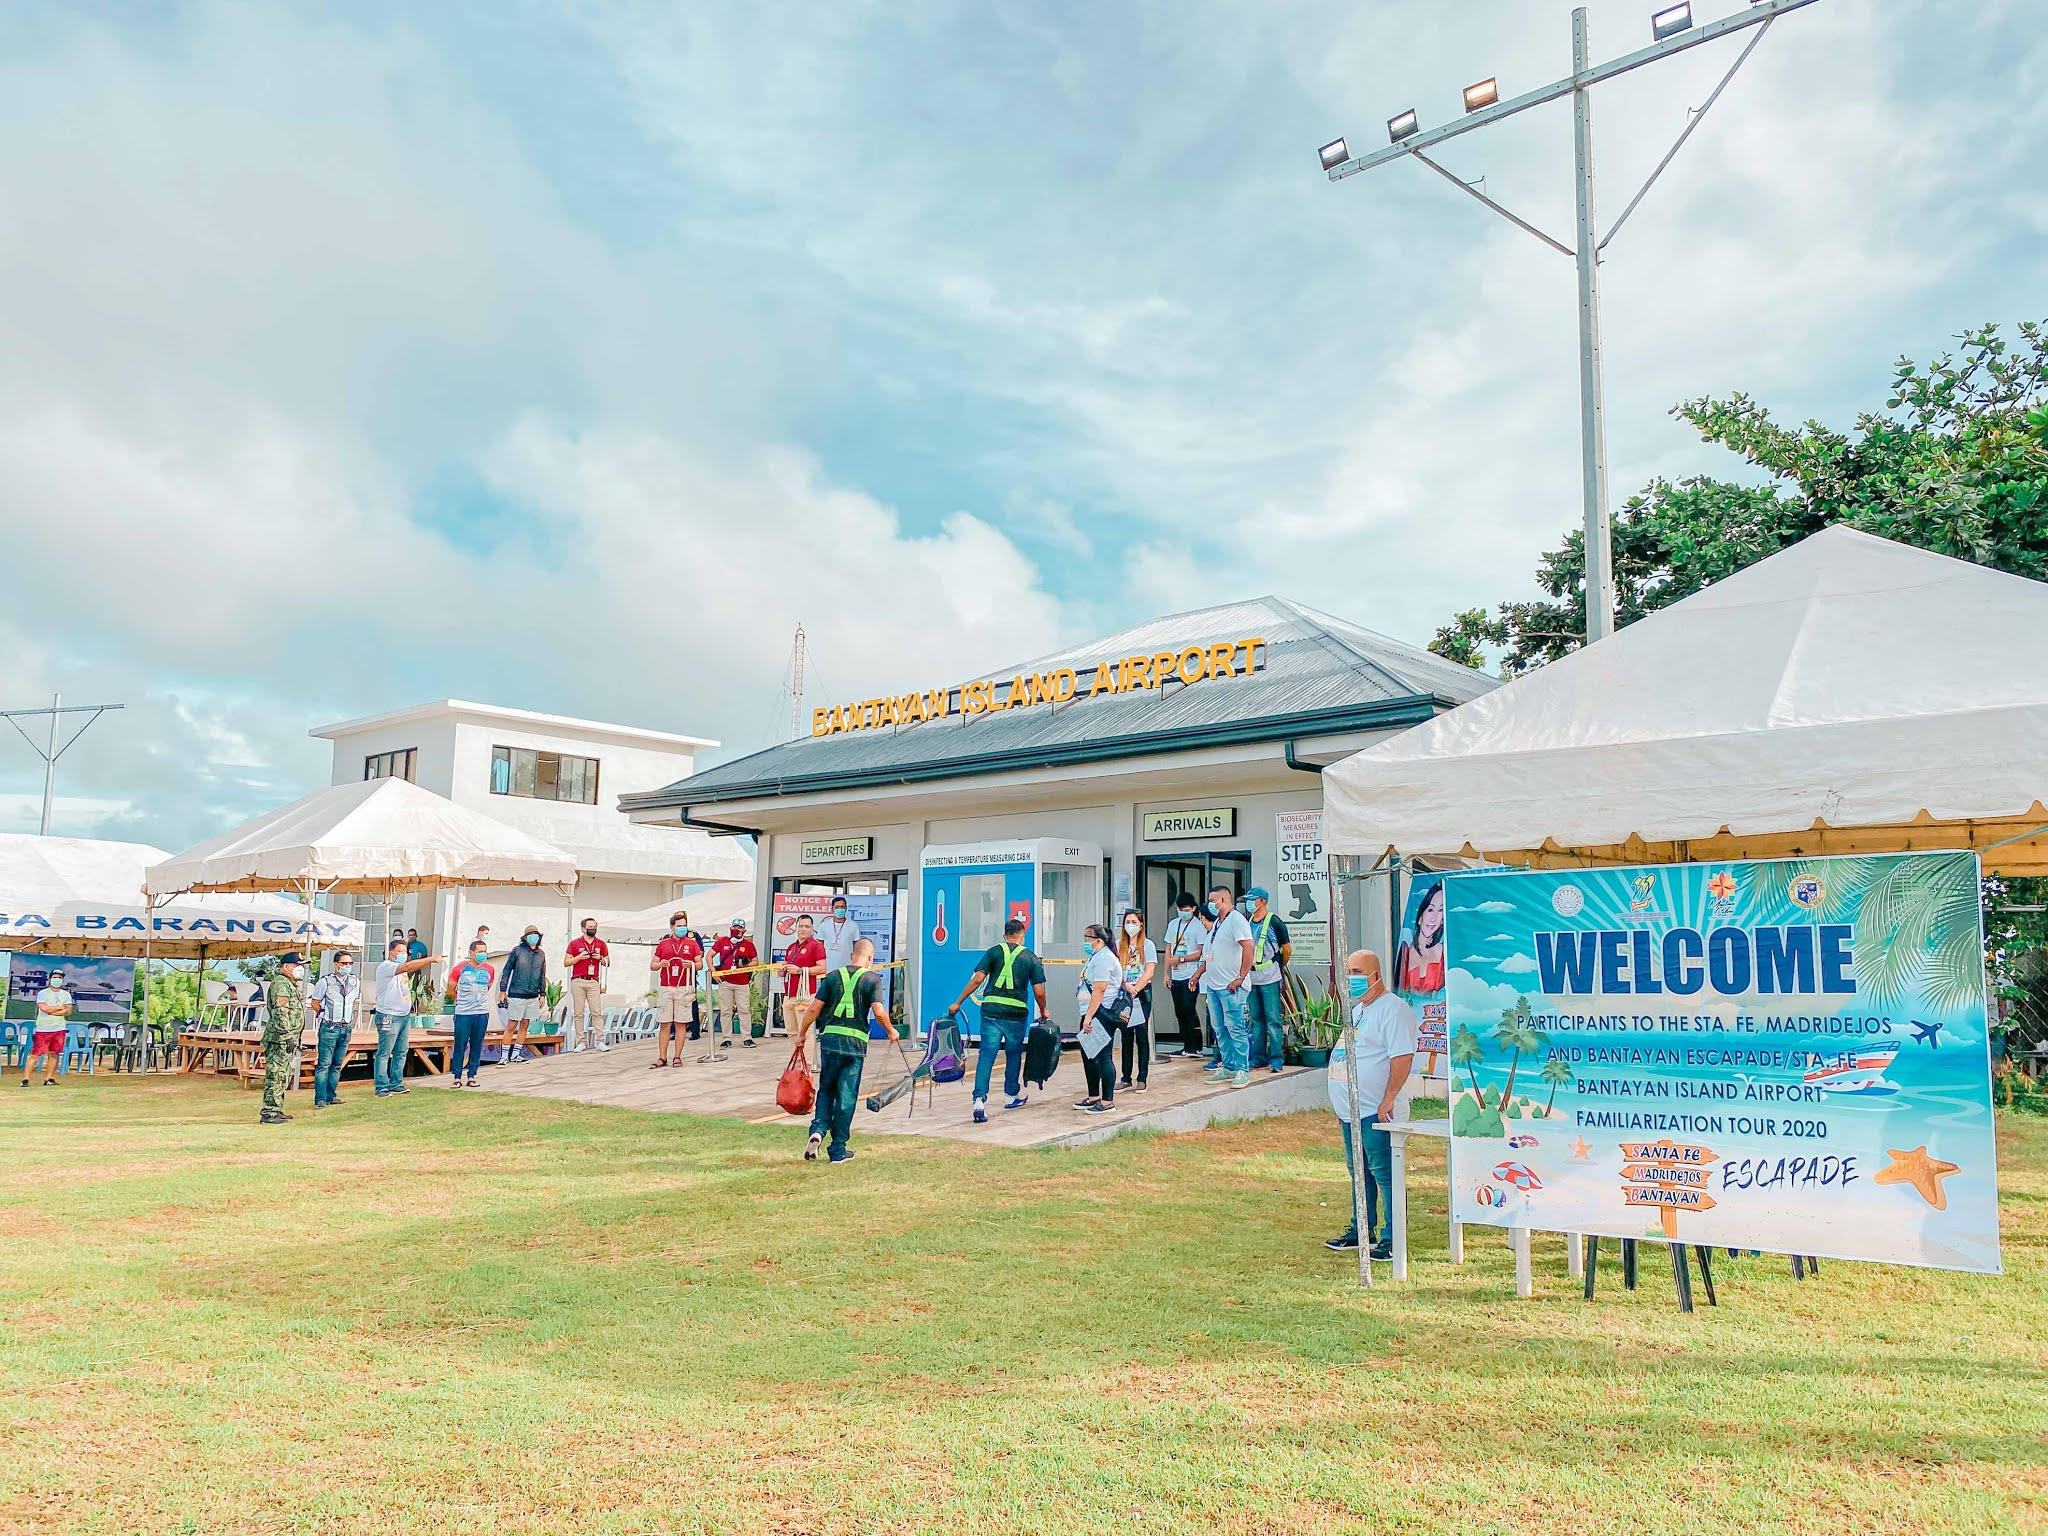 Annual Vacation Tradition in Bantayan Island - 2020 - Bantayan Island Airport